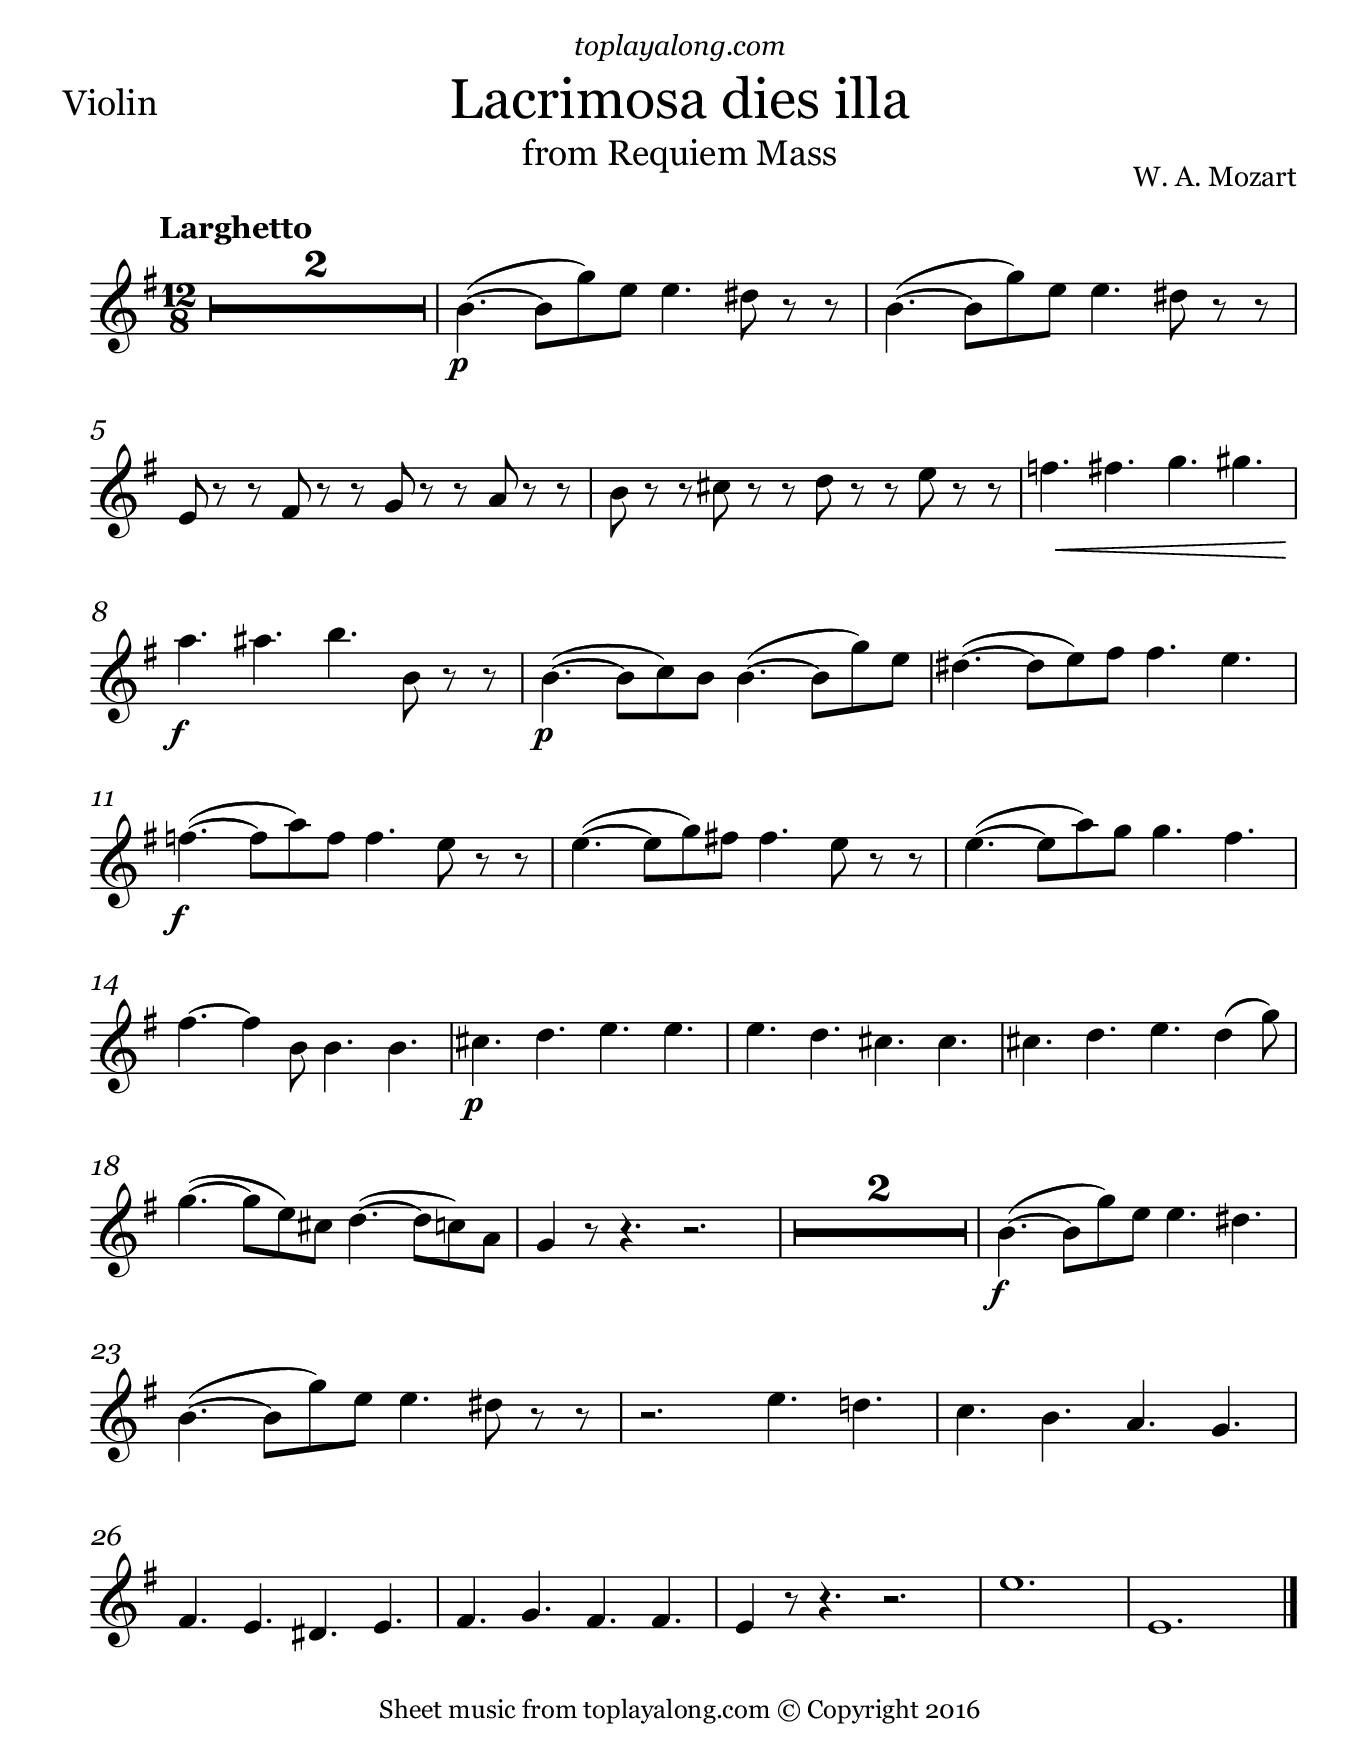 Lacrimosa from Requiem Mass by Mozart. Sheet music for Violin, page 1.